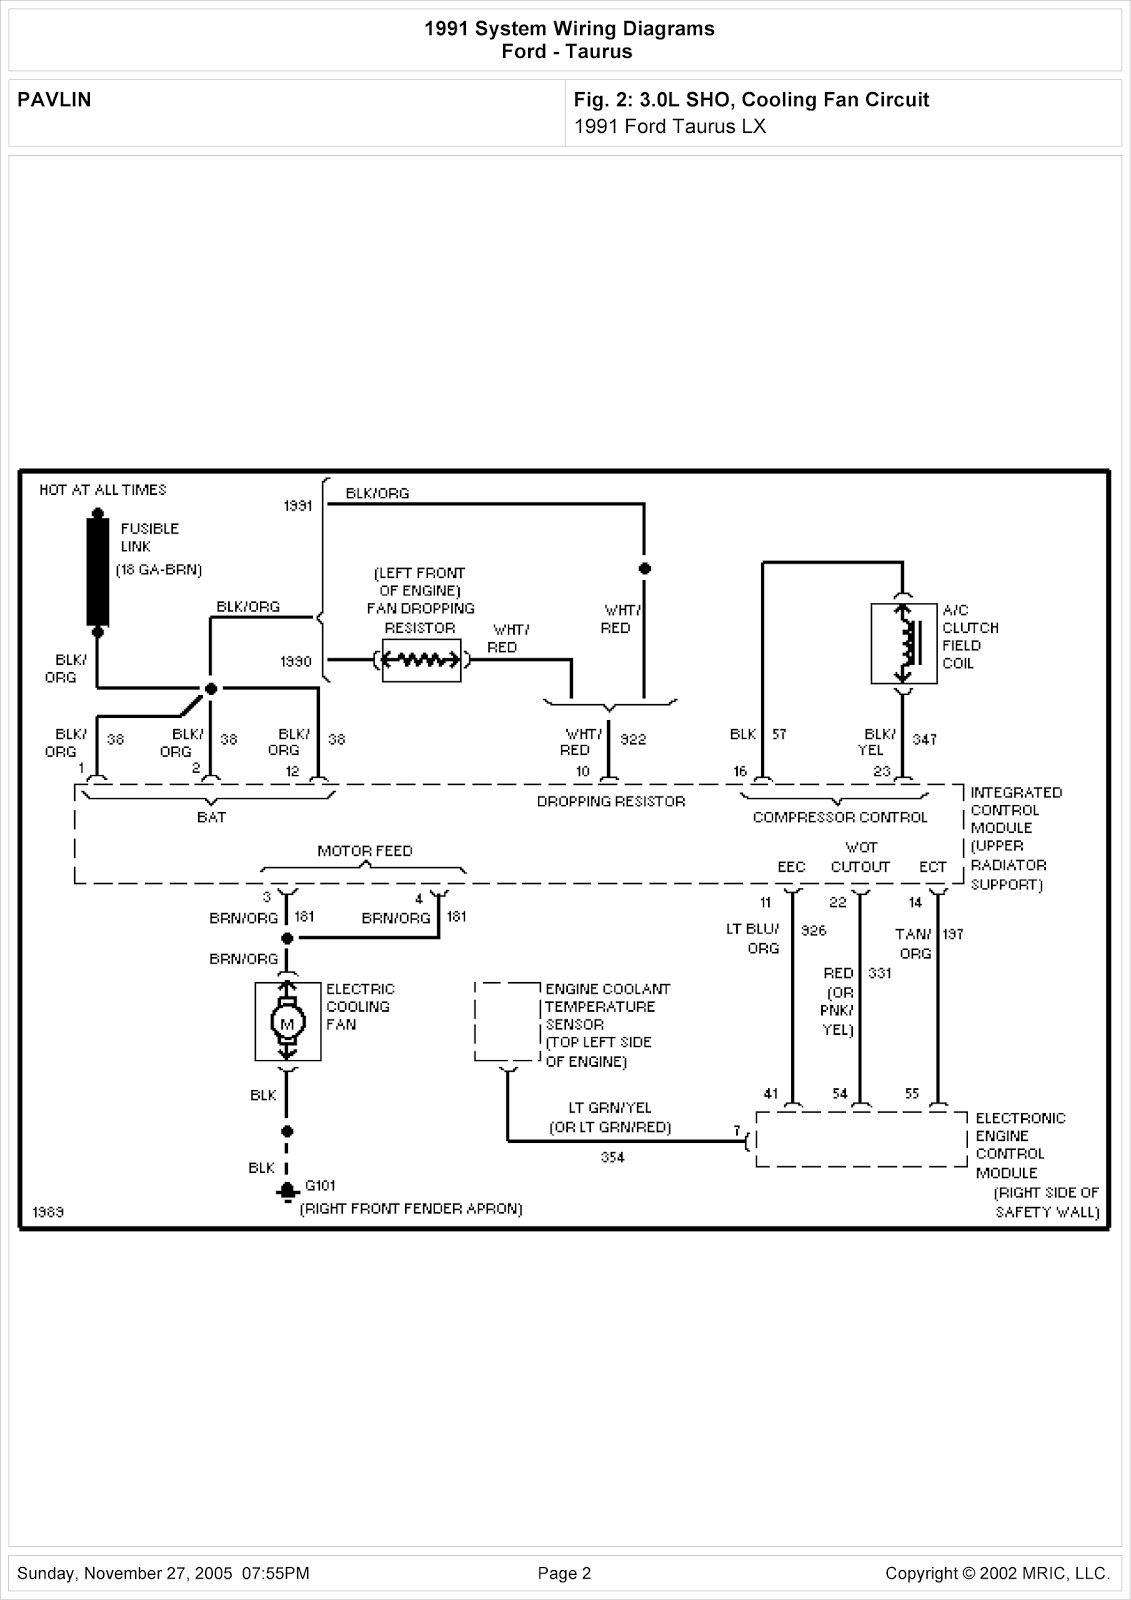 2002 Ford Taurus Wiring Harness Kits Auto Electrical Diagram